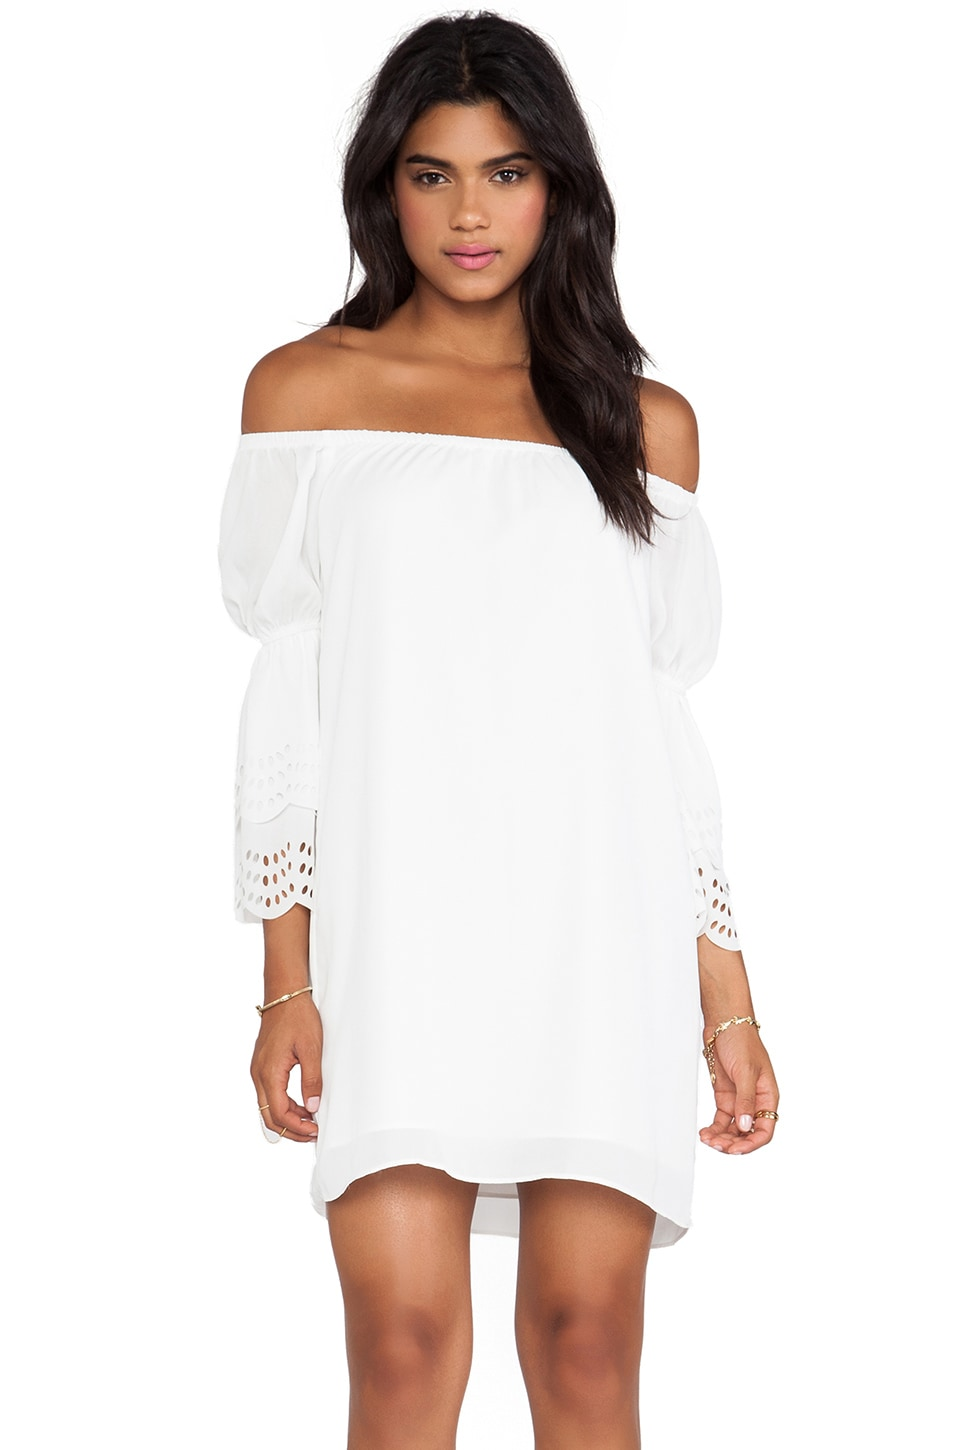 VAVA by Joy Han Celeste Off Shoulder Dress in White